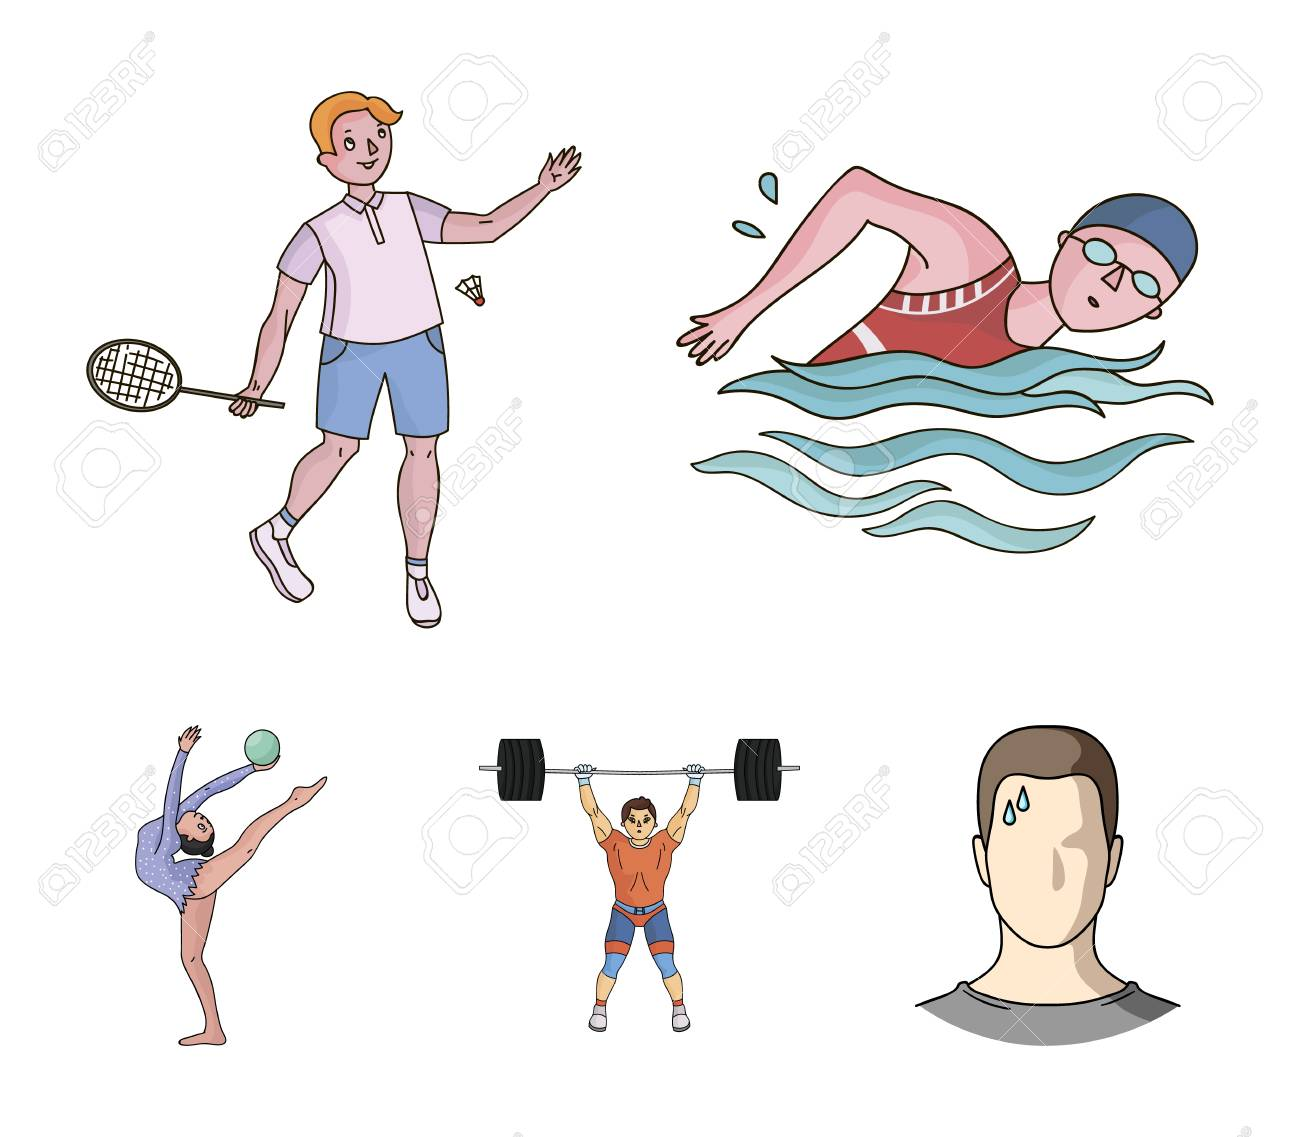 Swimming Badminton Weightlifting Artistic Gymnastics Sport Royalty Free Cliparts Vectors And Stock Illustration Image 95526927